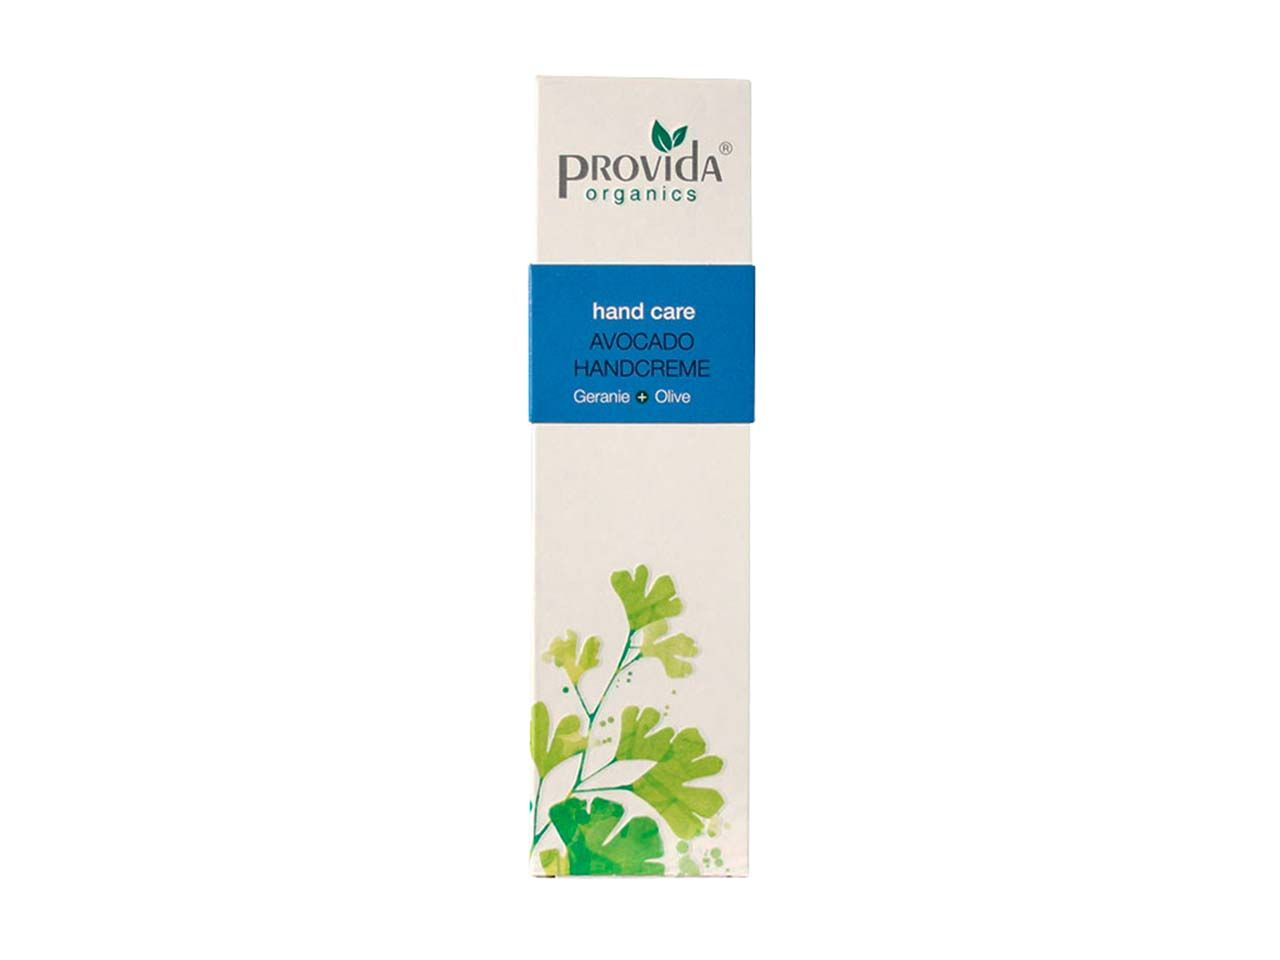 Provida Handcreme mit Avocado 50 ml 1901